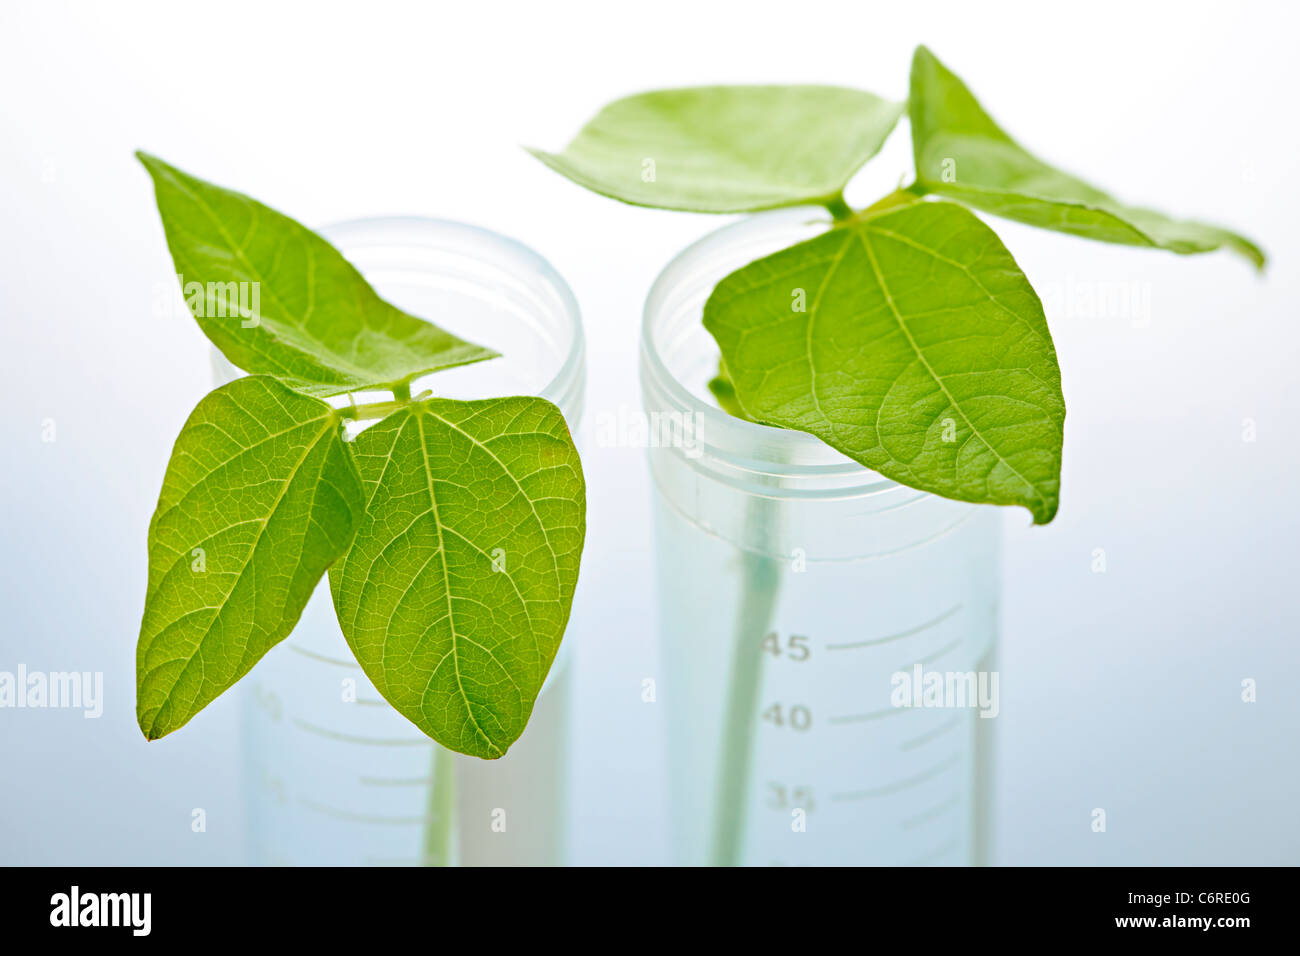 Genetically modified plant seedlings in two test tubes Stock Photo